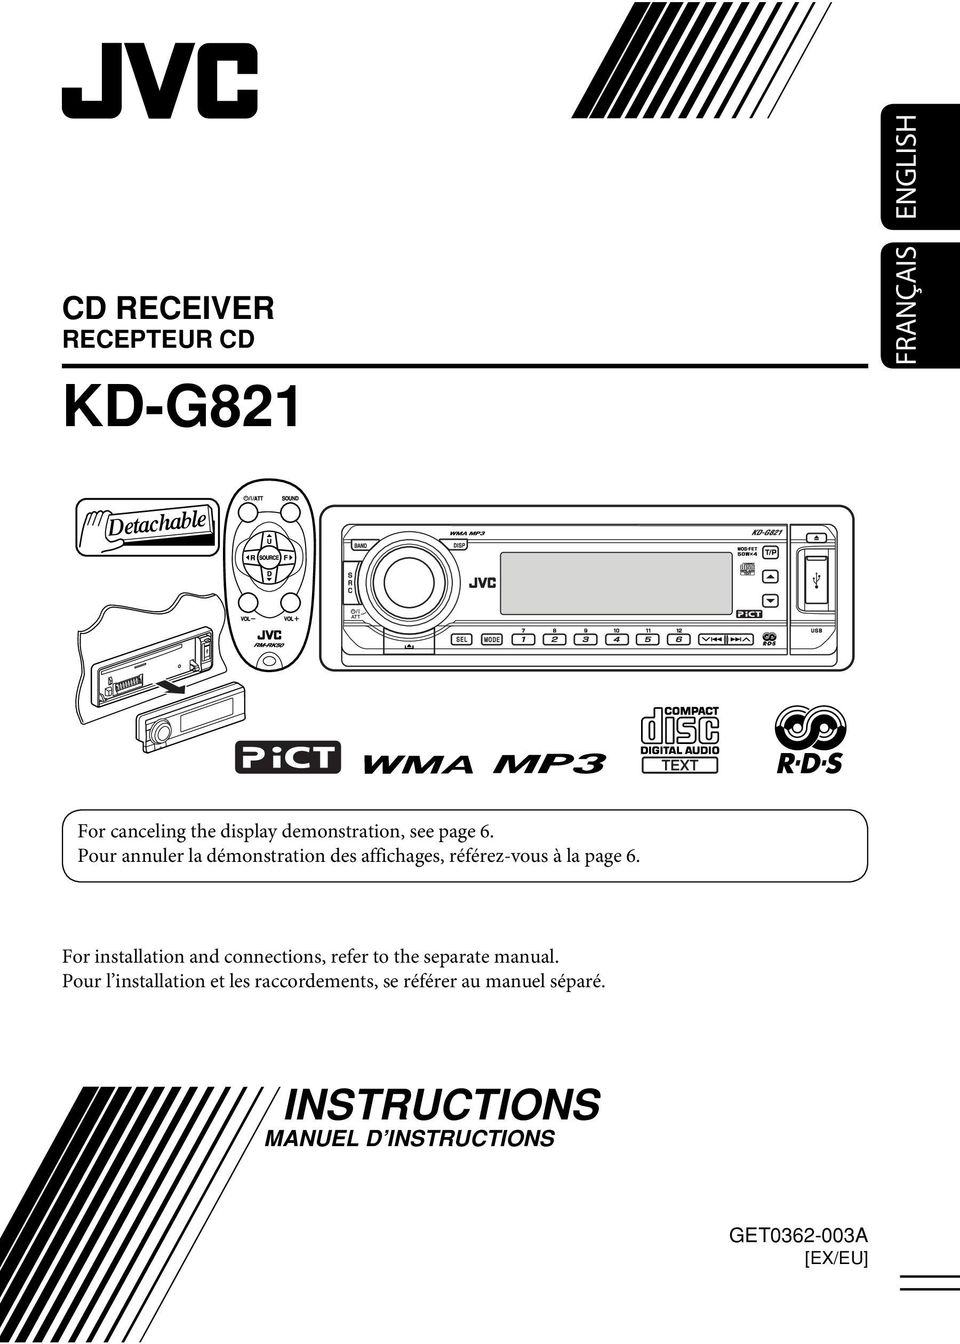 For installation and connections, refer to the separate manual.